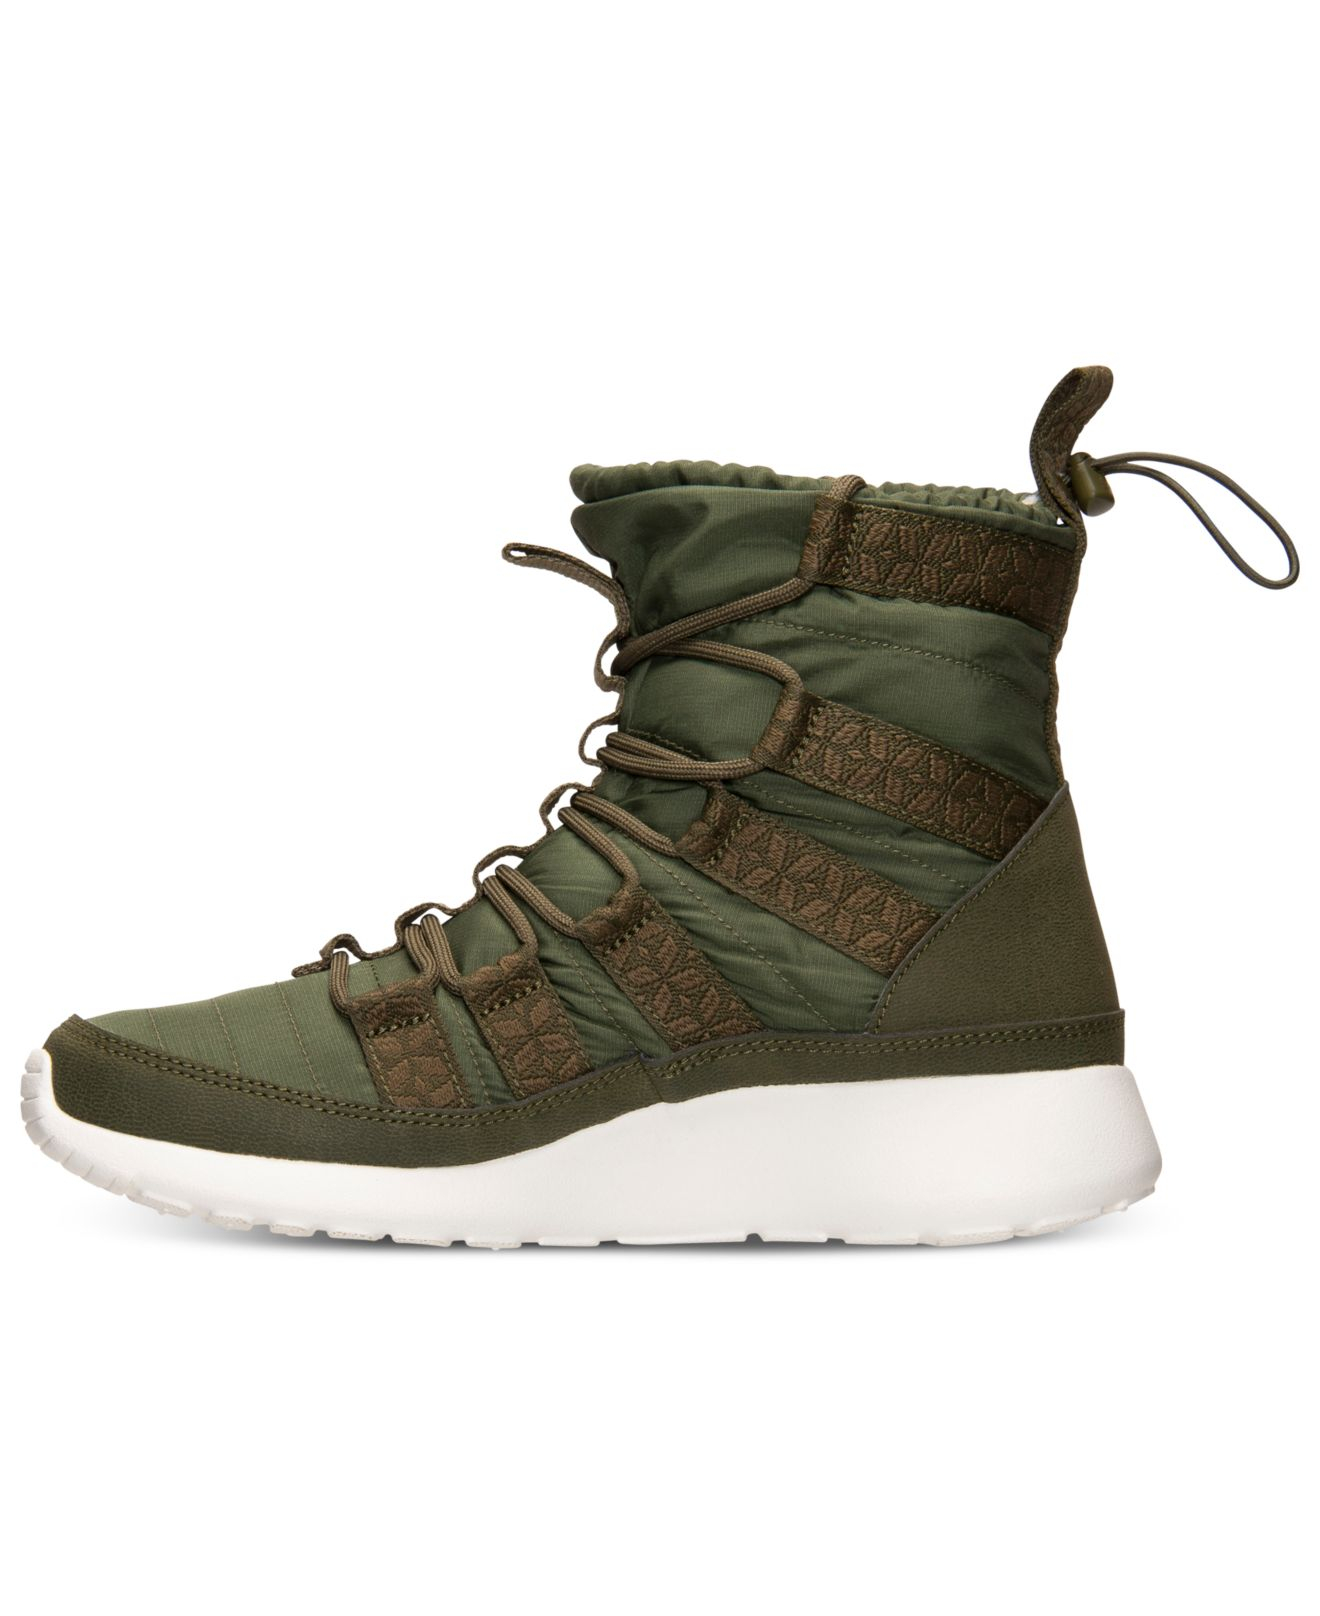 bb2745690363 ... sweden lyst nike womens roshe run hi sneakerboots from finish line in  green 5e050 fc9f1 ...